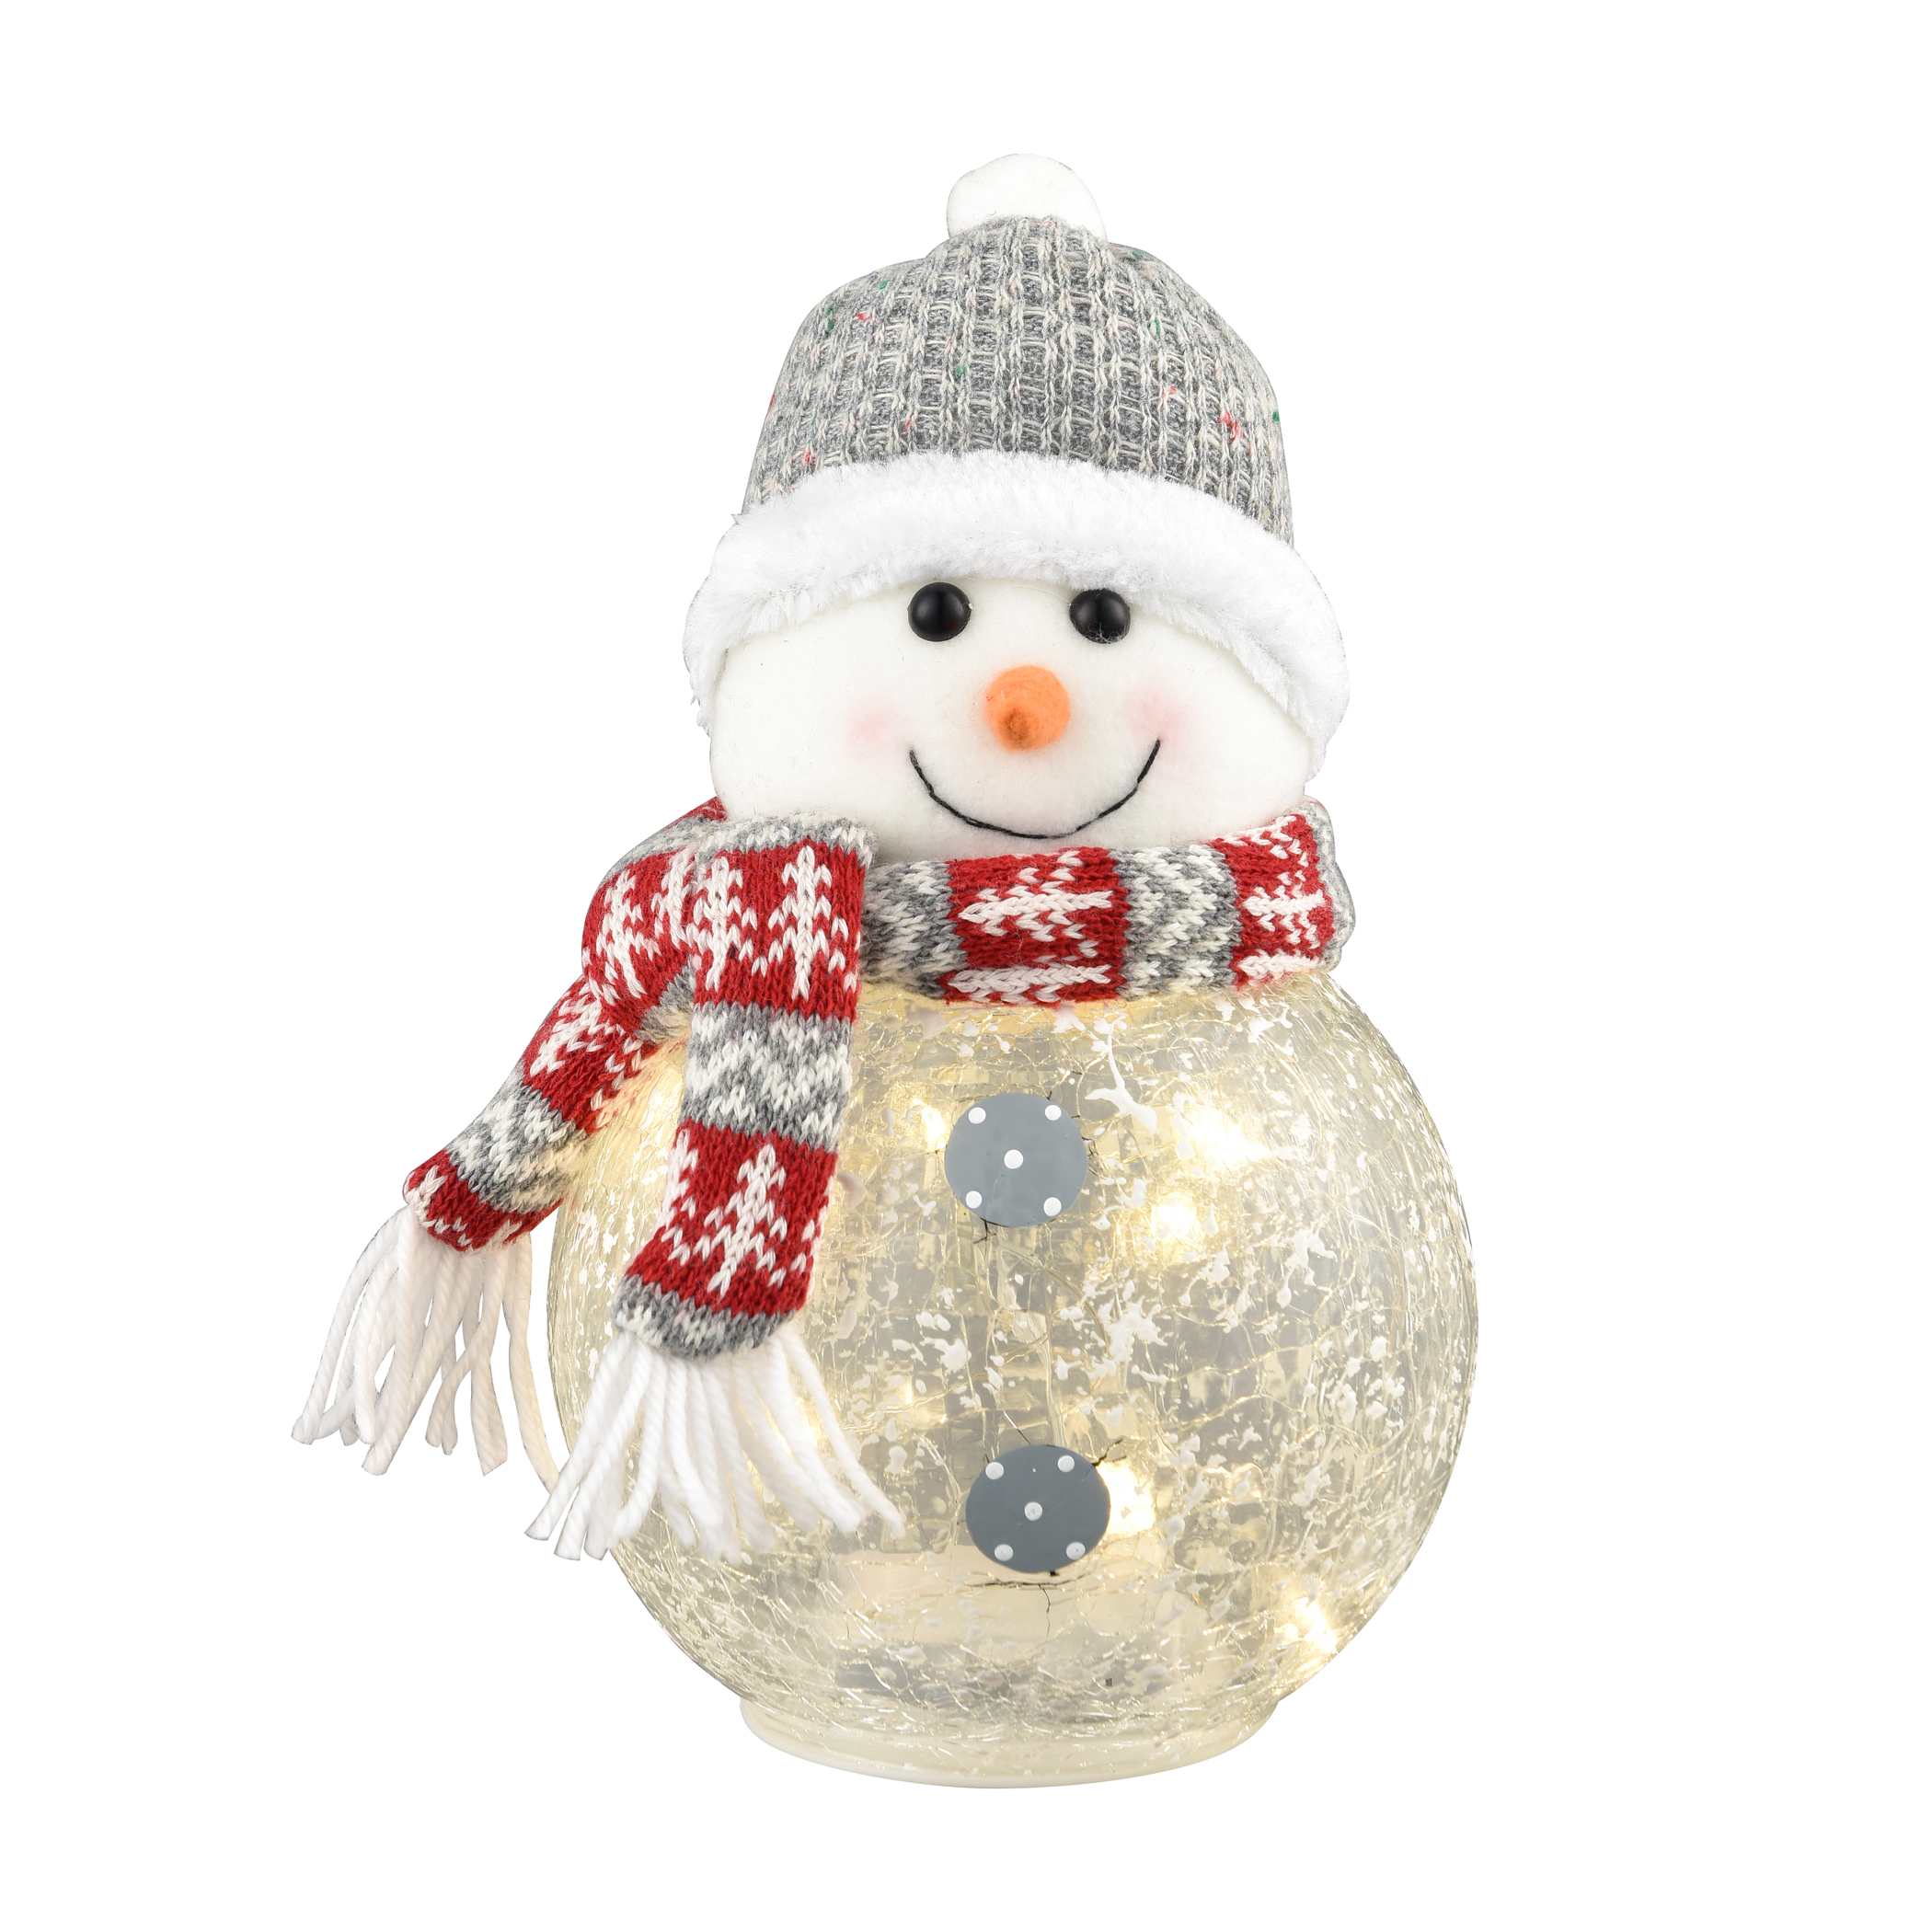 "Chilly Snowman Light 6""W x 6""D x 9.5""H"